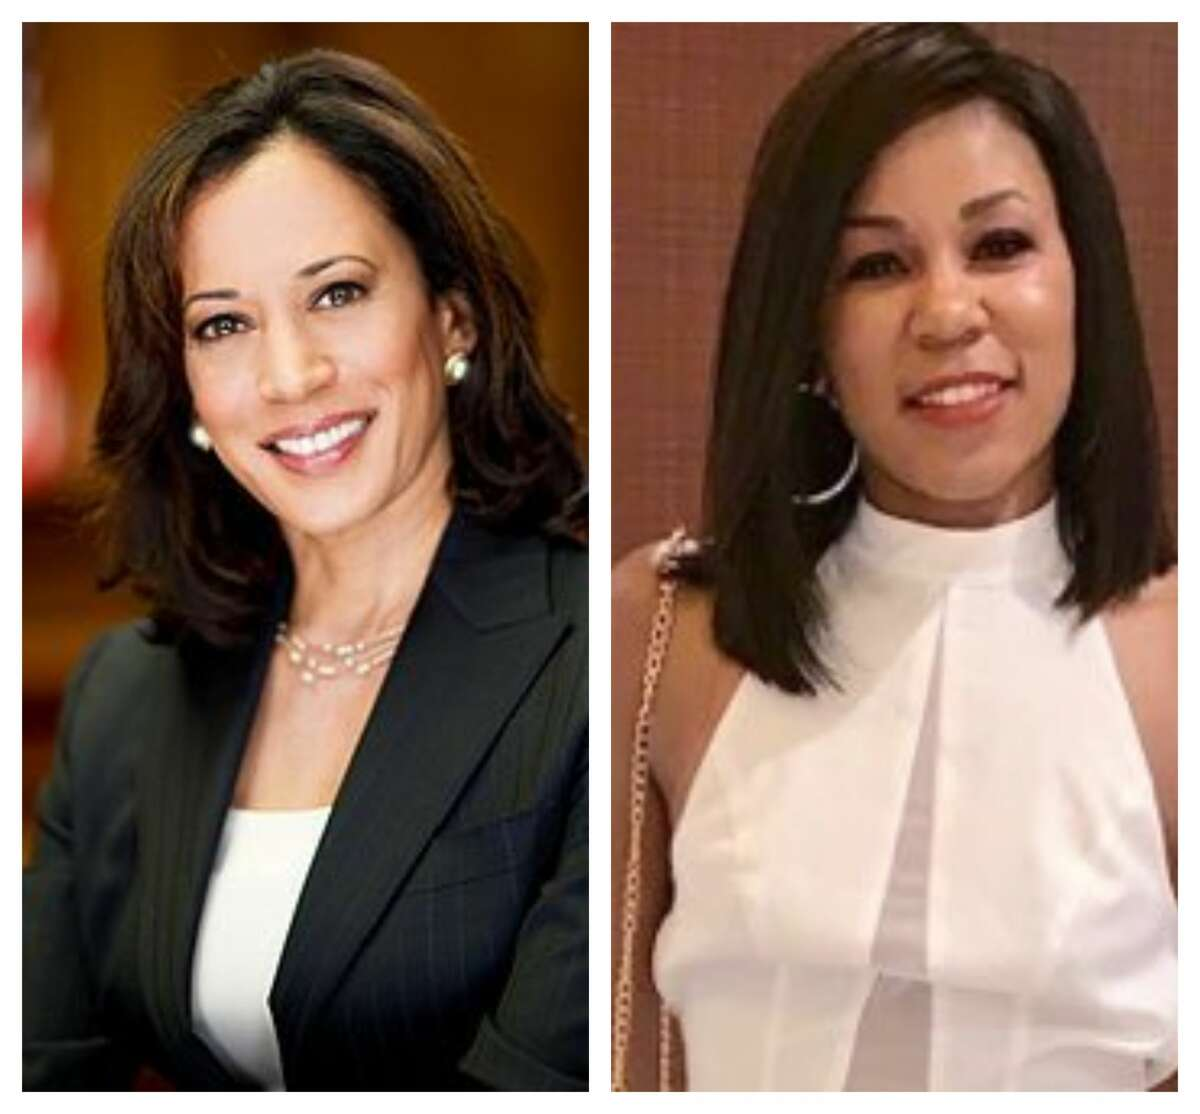 """A 33-year-old Houston woman, Cynthia Anne, at right, is getting a """"Kamala Makeover"""" to look like Democratic Vice Presidential nominee Kamala Harris. The surgery will be done by Dr. Franklin Rose and Utopia Plastic Surgery and MedSpa."""